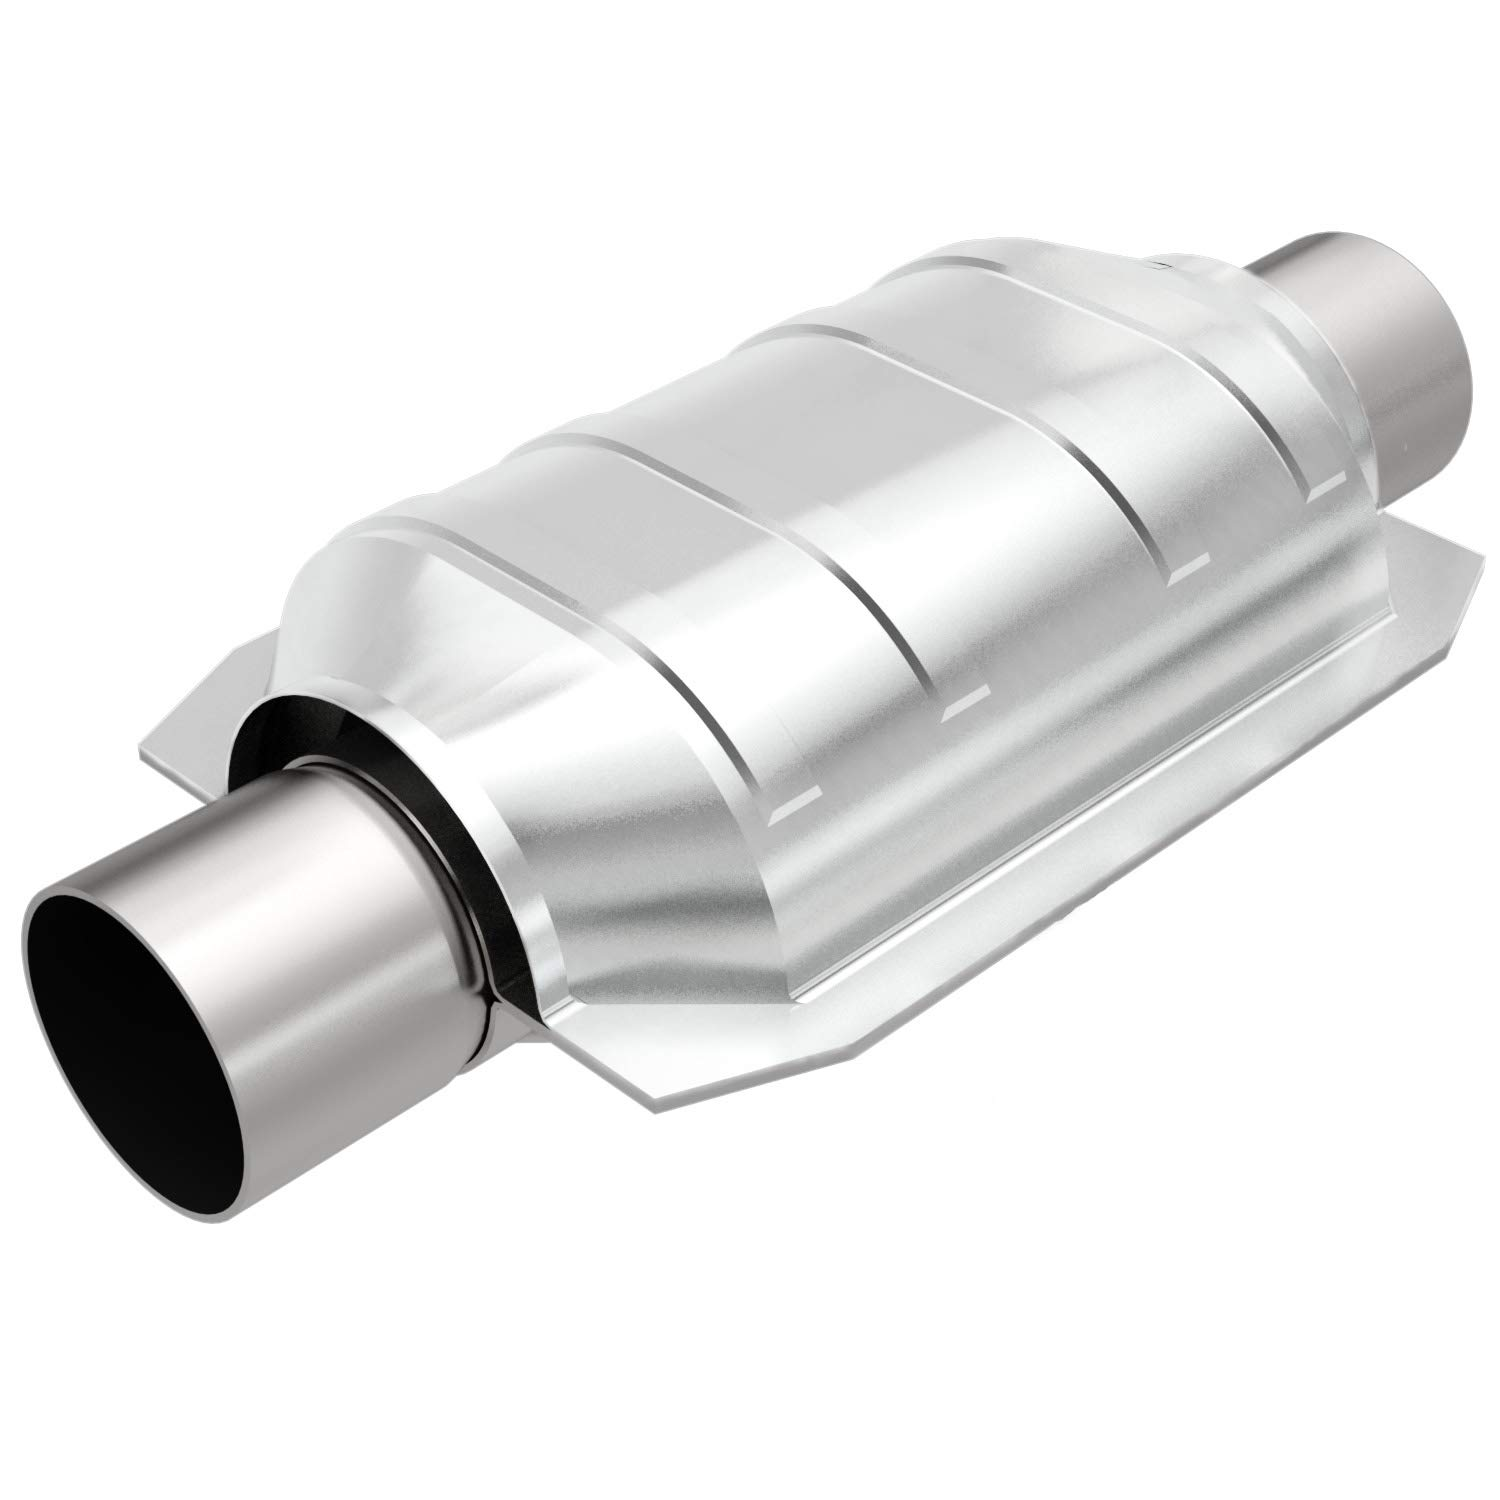 MagnaFlow 94109 Universal Catalytic Converter (Non CARB Compliant) MagnaFlow Exhaust Products